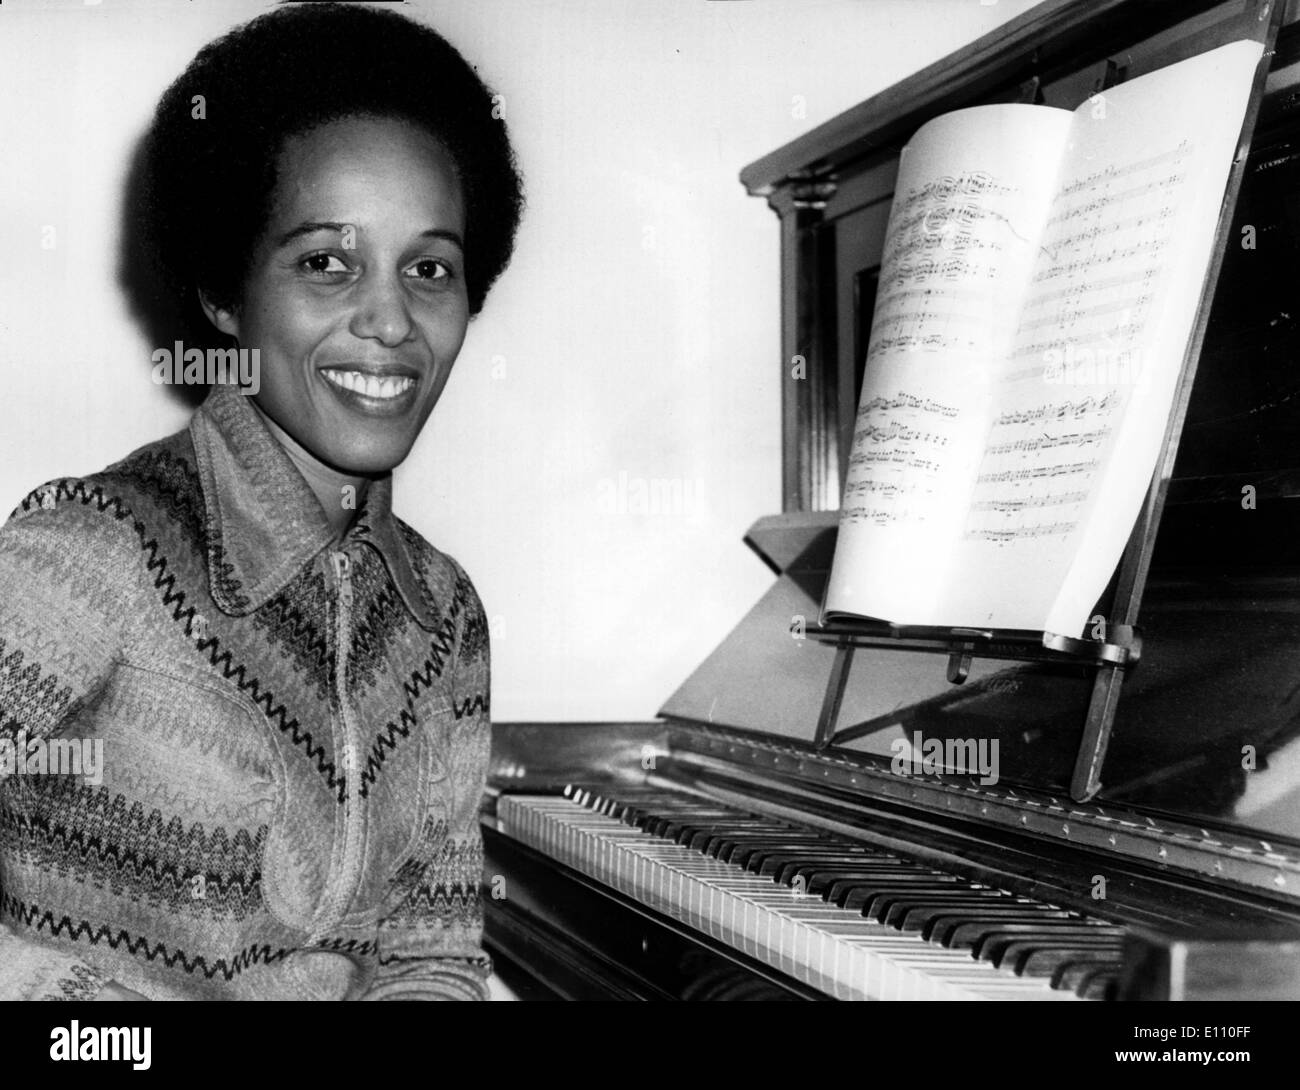 Jamaican born pianist NERINE BARRETT, plays Chopin's Second Piano Concerto at the Royal Festival Hall, London - Stock Image